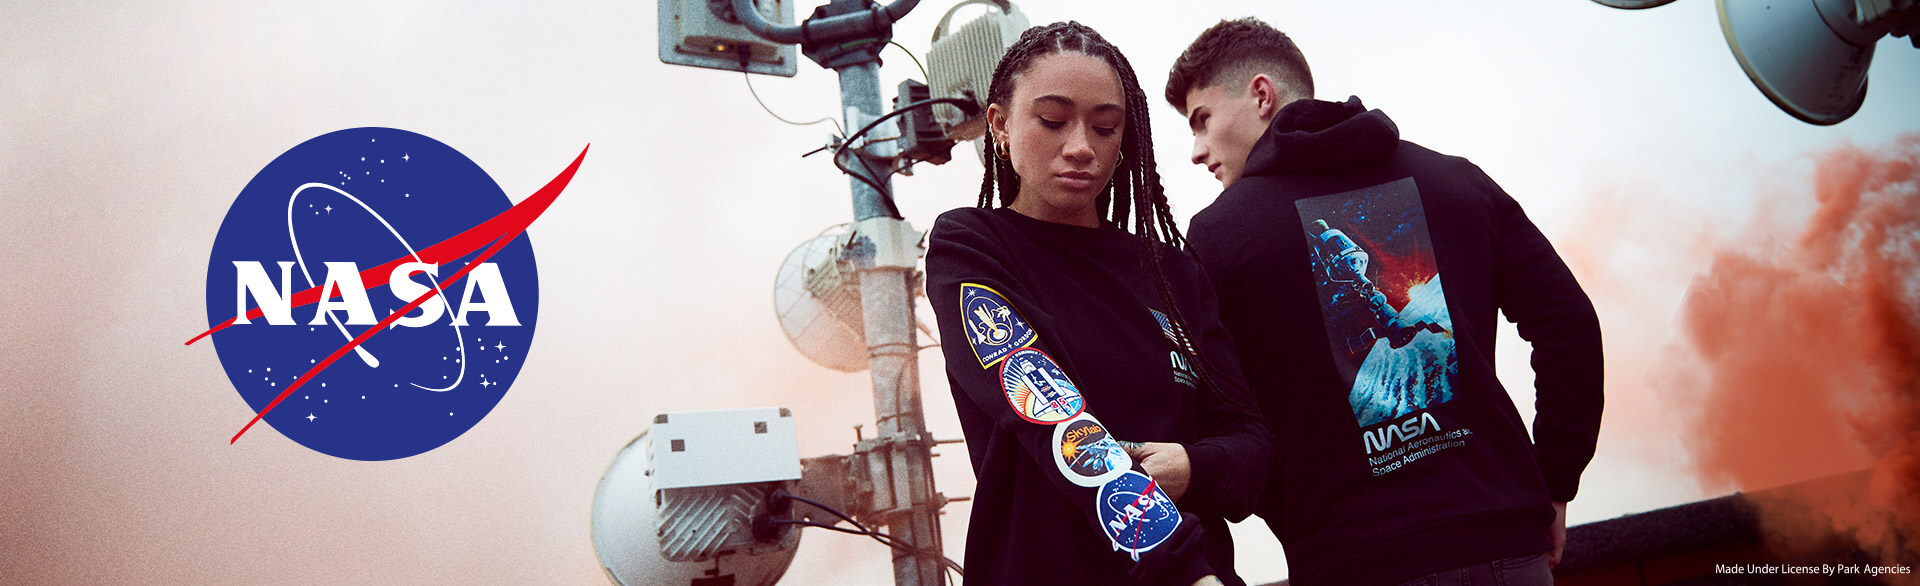 NASA CLOTHING